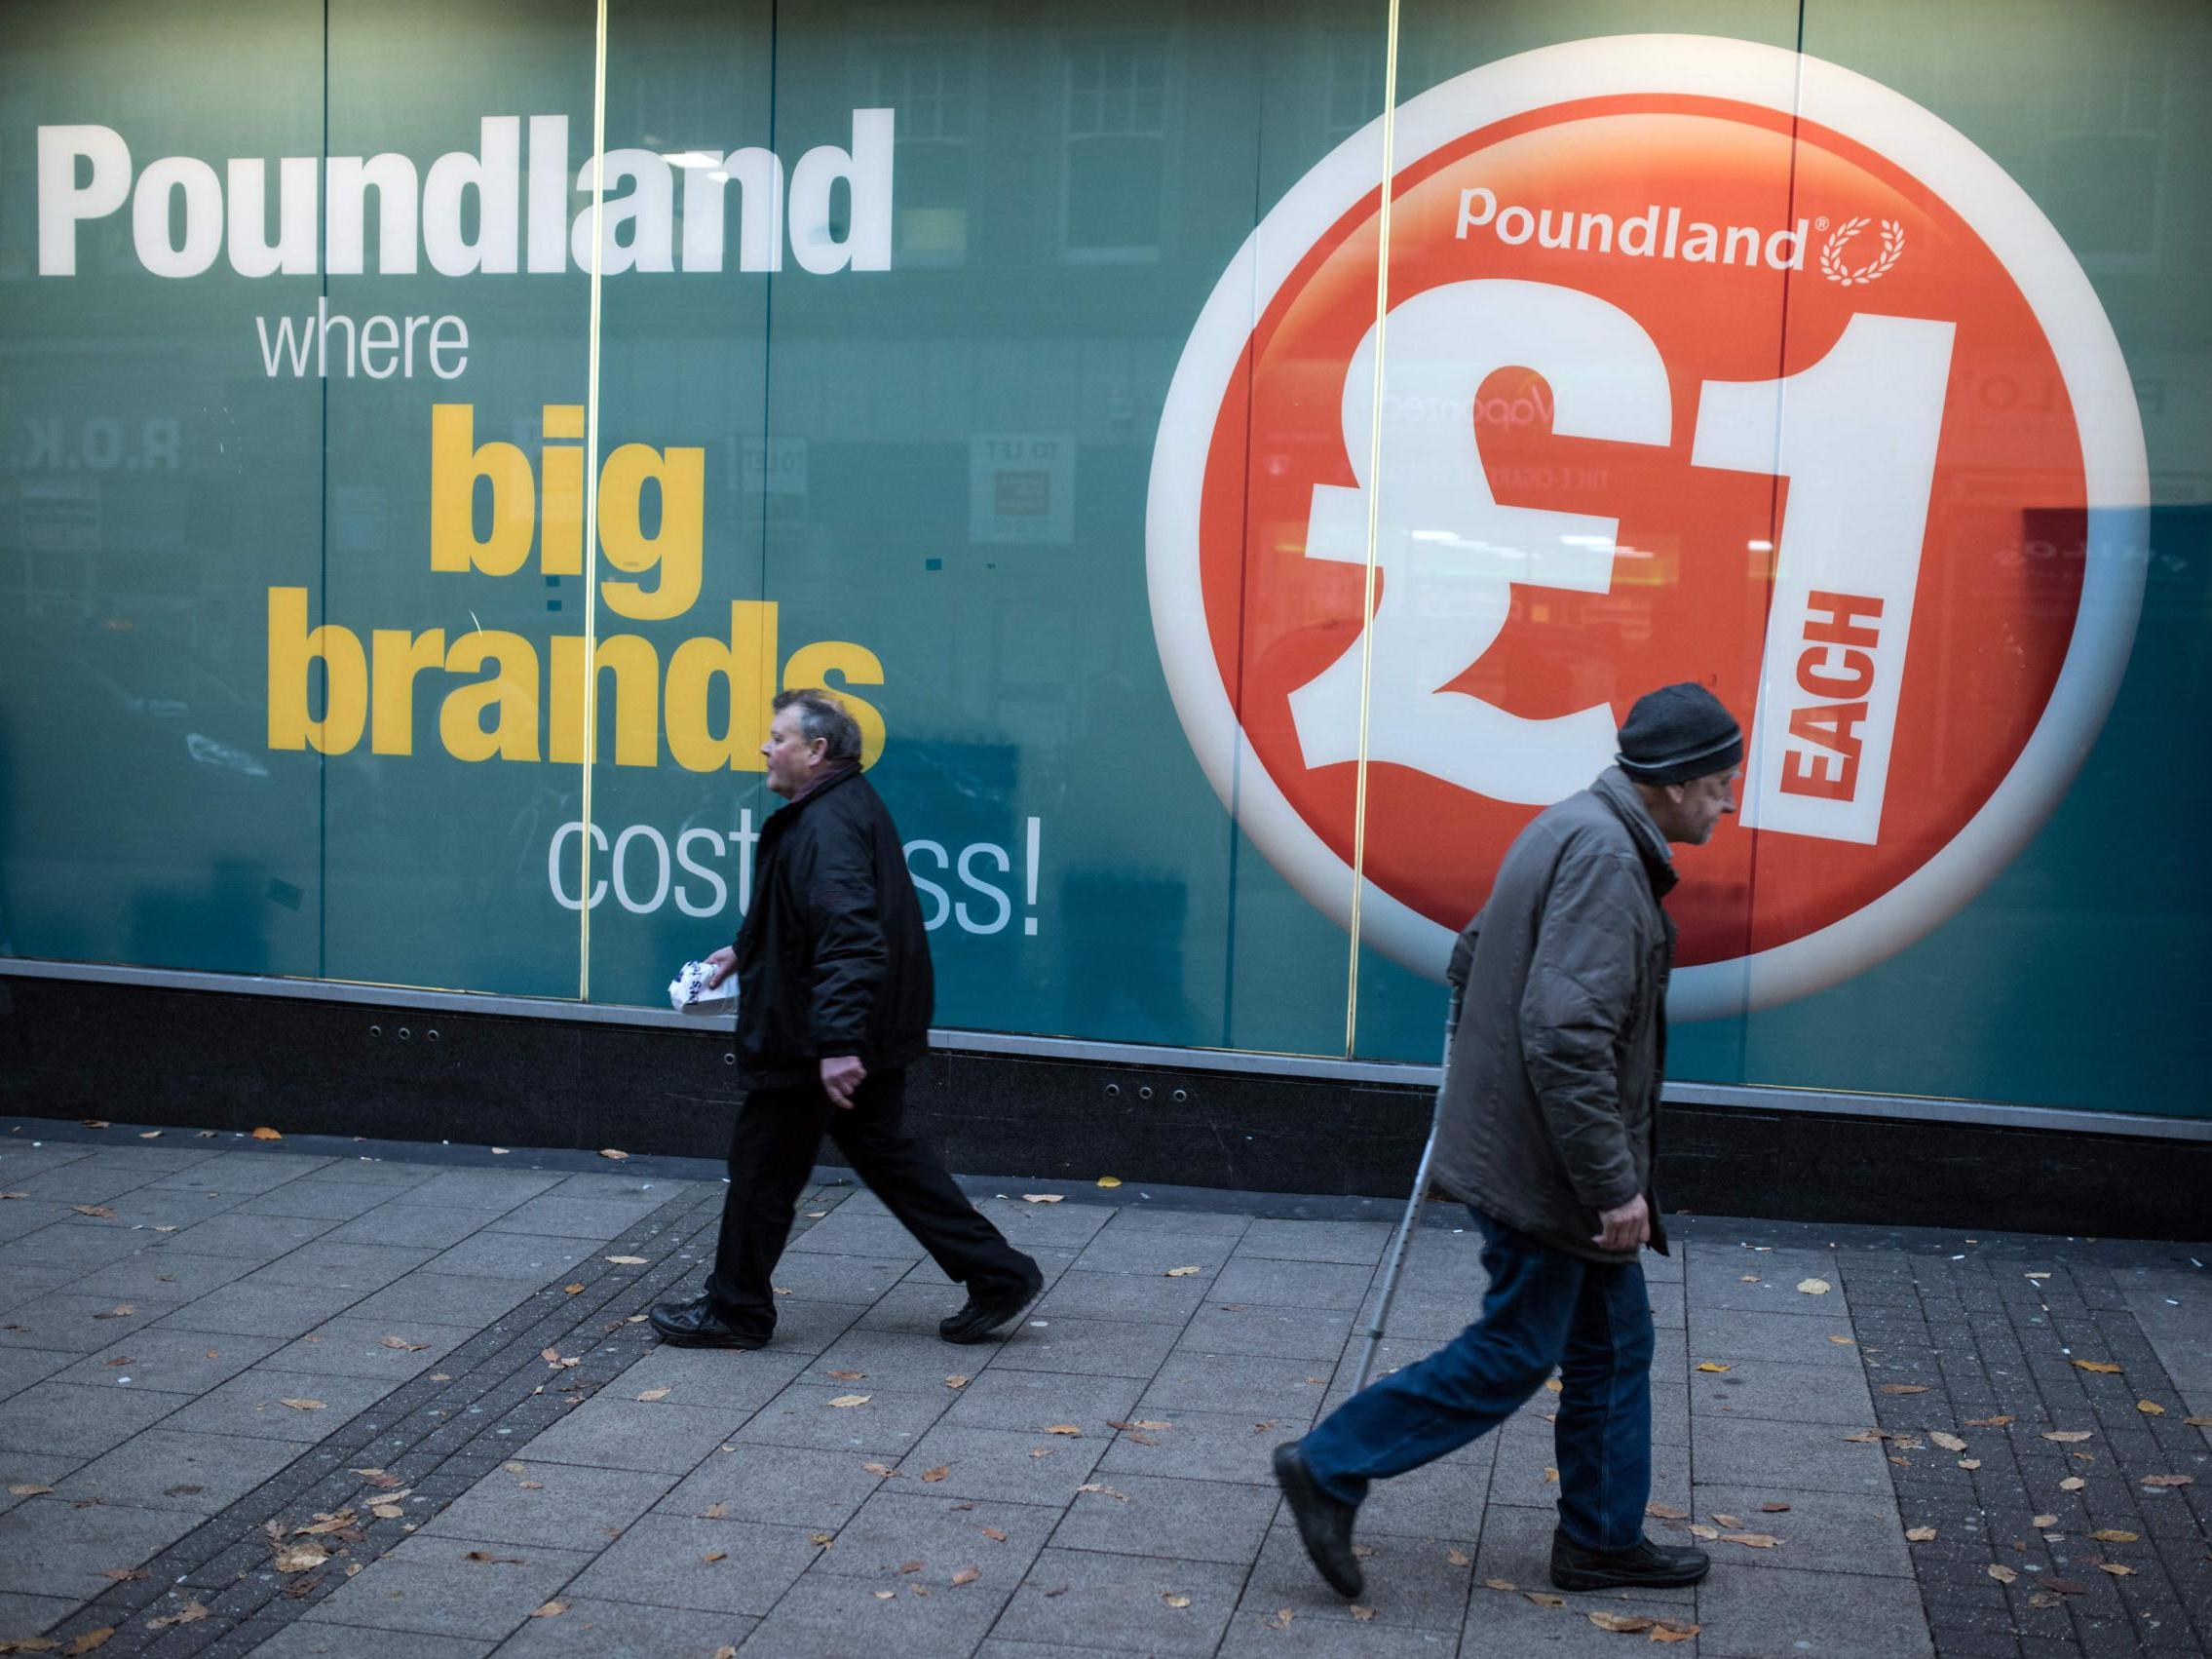 Poundland is no longer a pound shop as it ditches £1 price promise